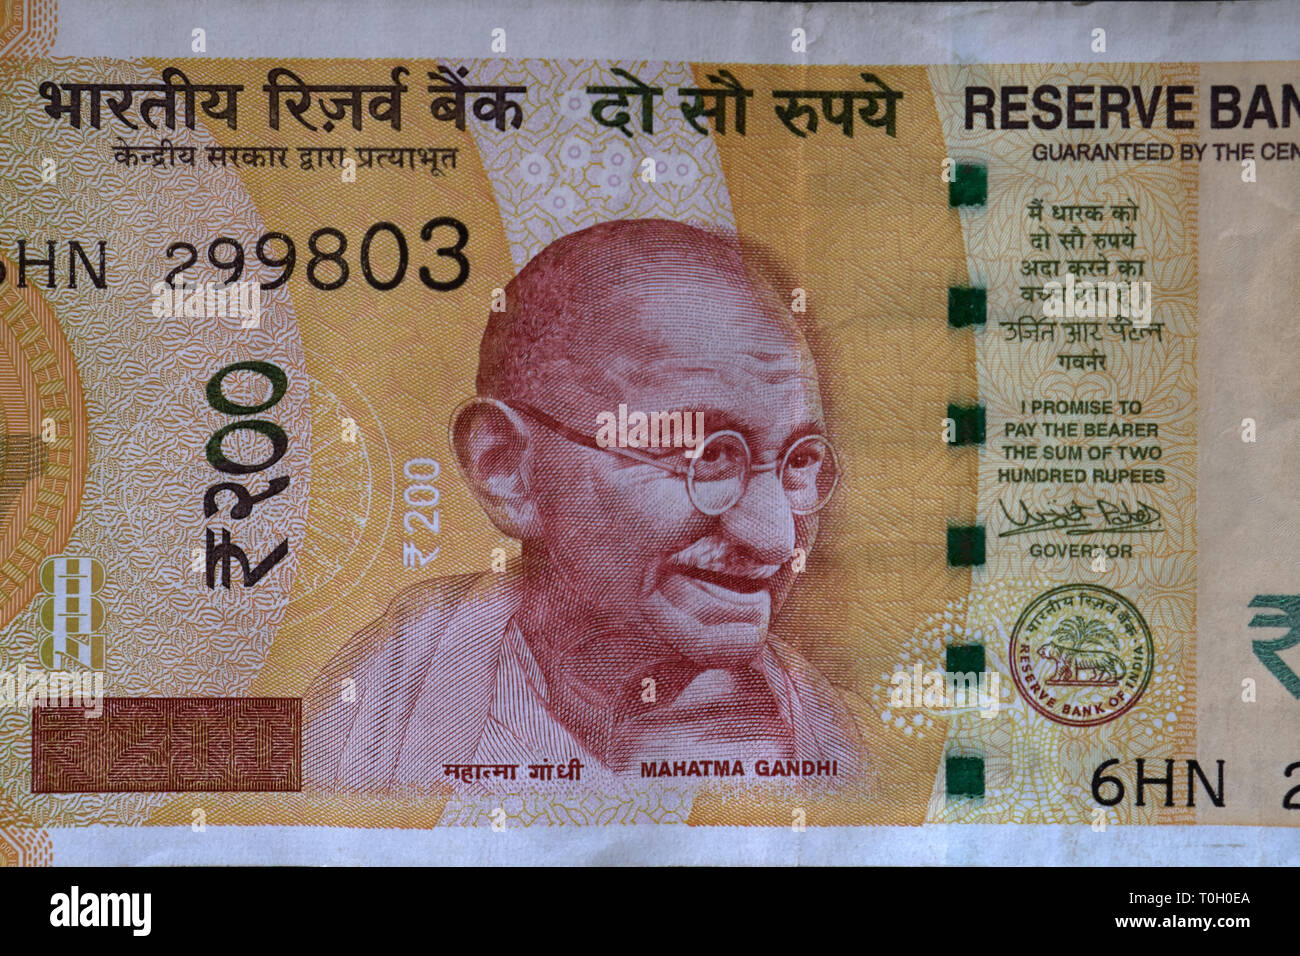 200 Rupee Currency Note Stock Photos & 200 Rupee Currency